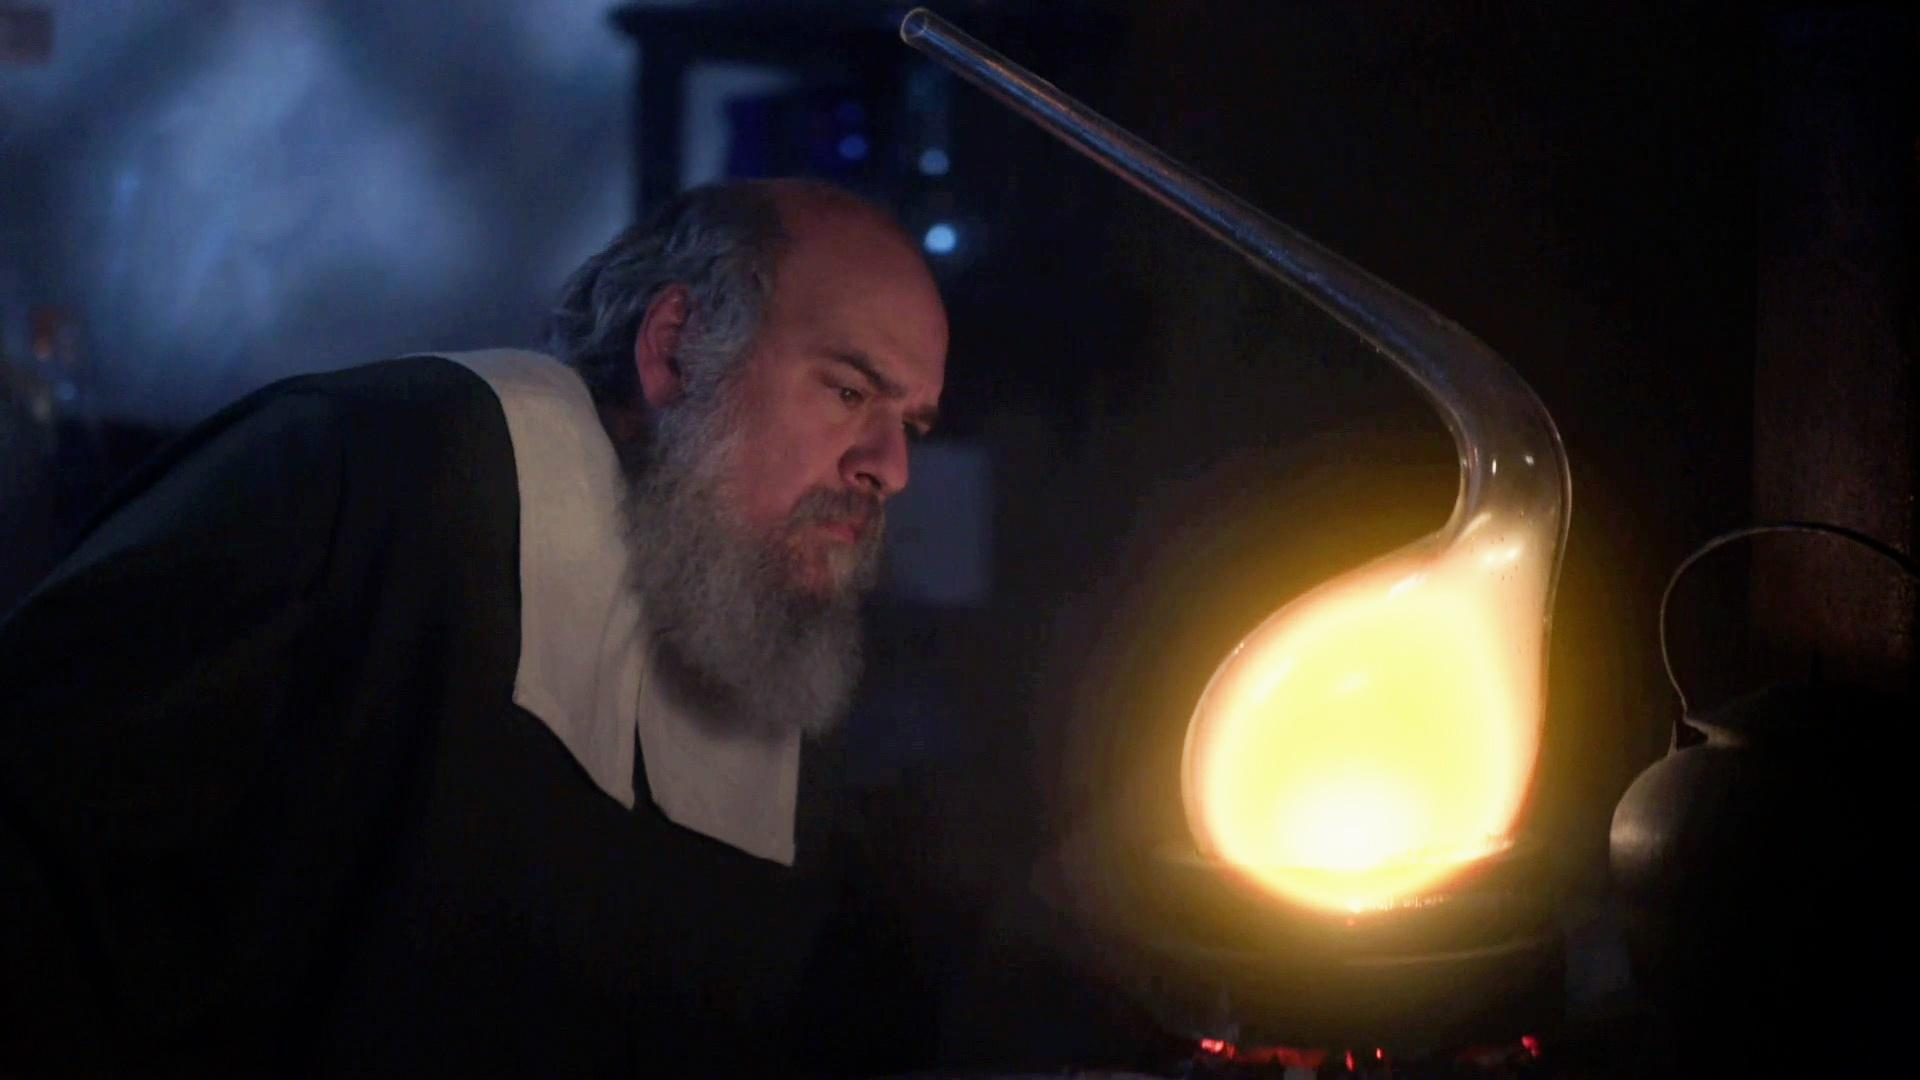 Watch Full Episodes Online Of The Mystery Of Matter On Pbs